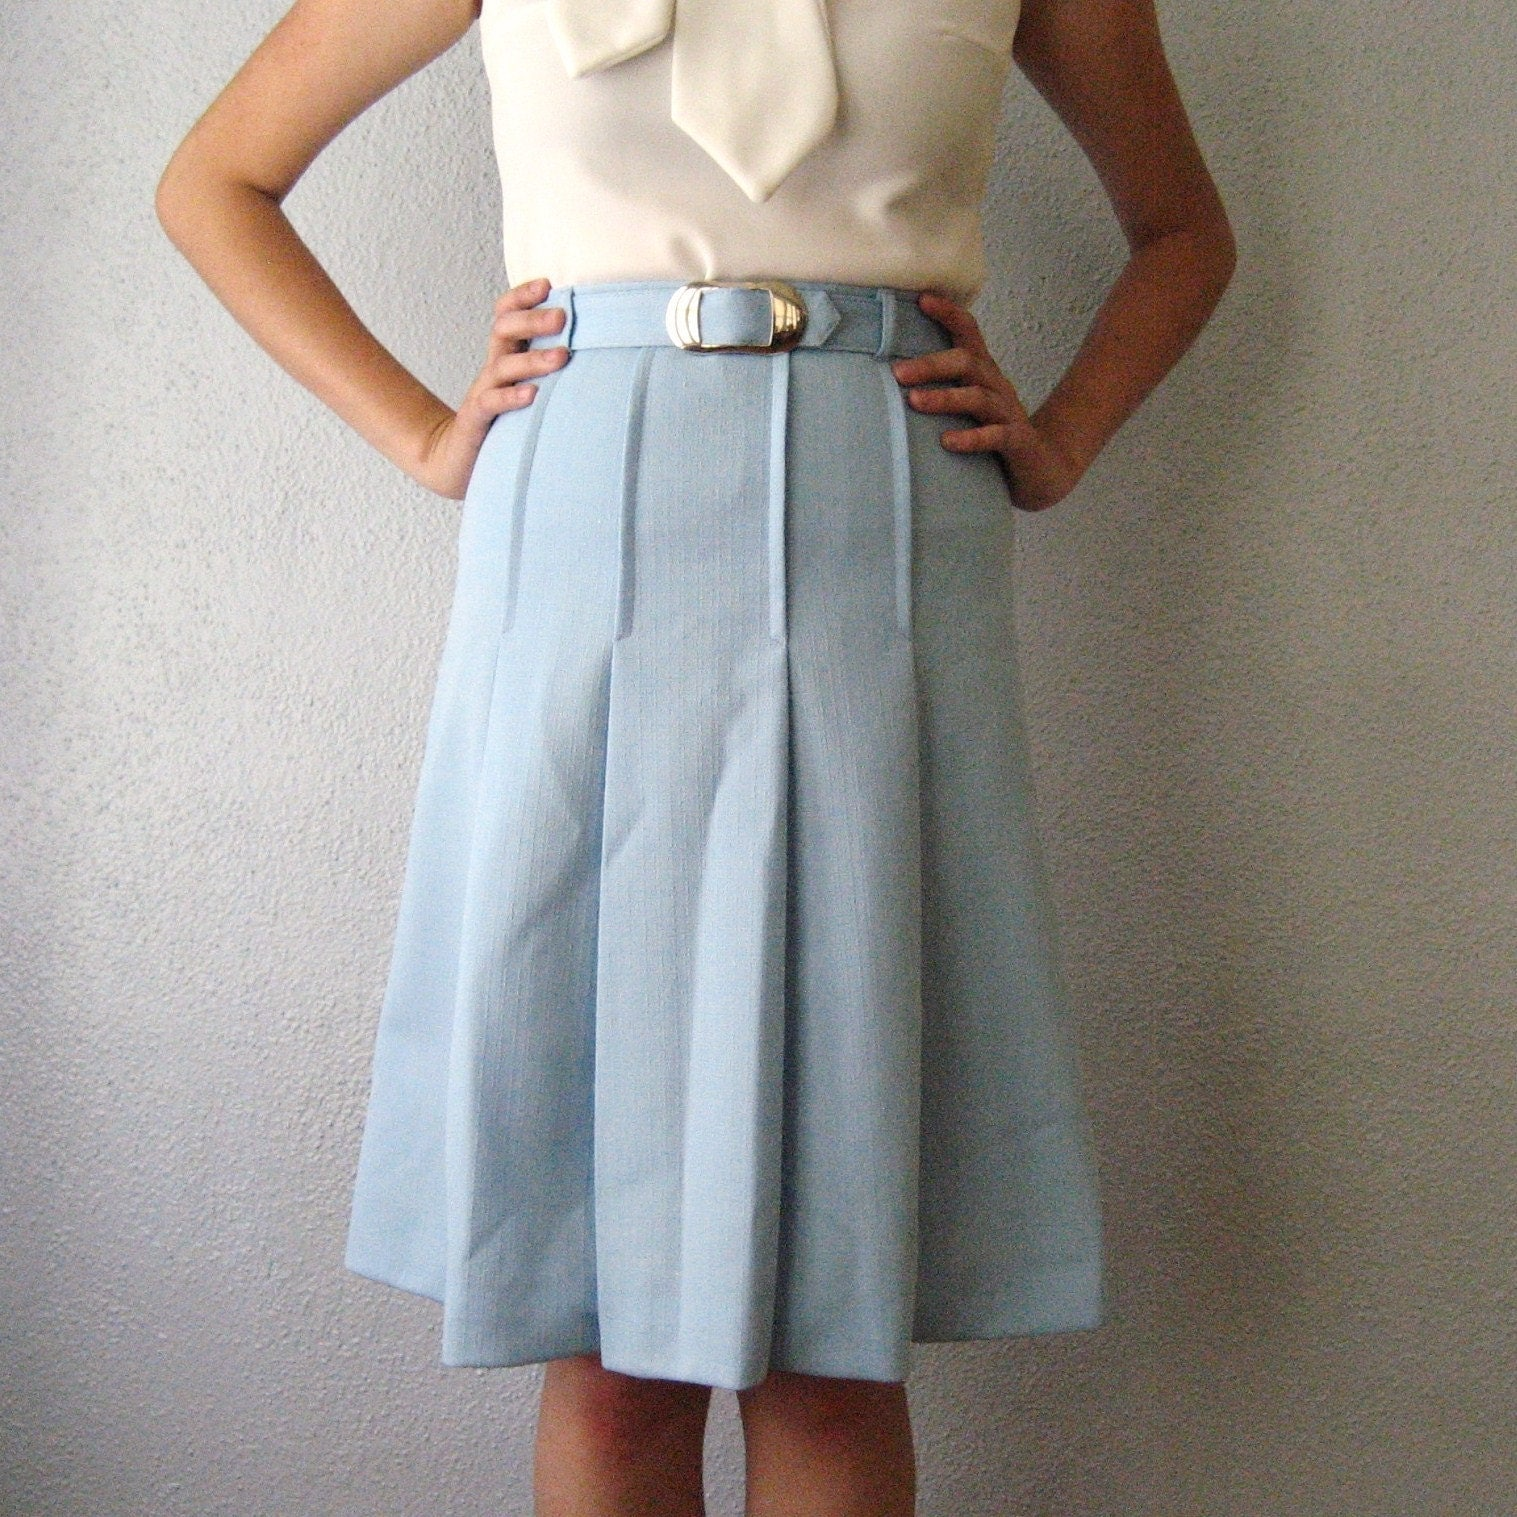 The Jean Harlow Skirt